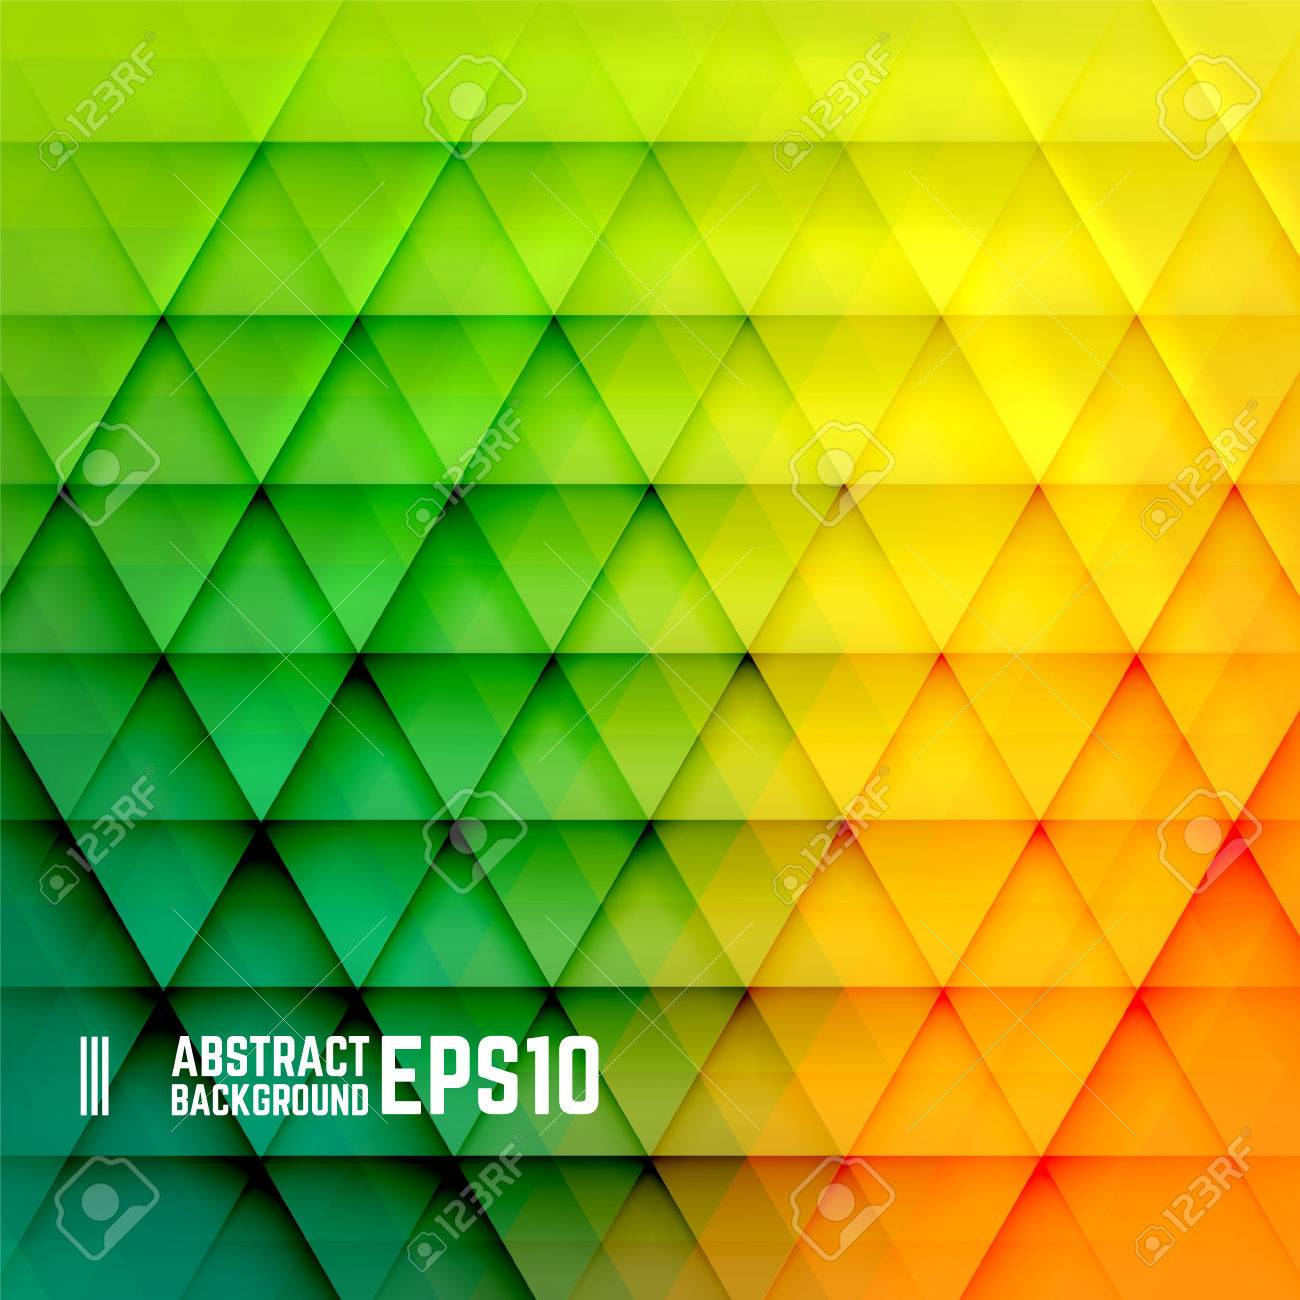 Yellow, orange and green abstract triangle background. Vector illustration. - 42810652